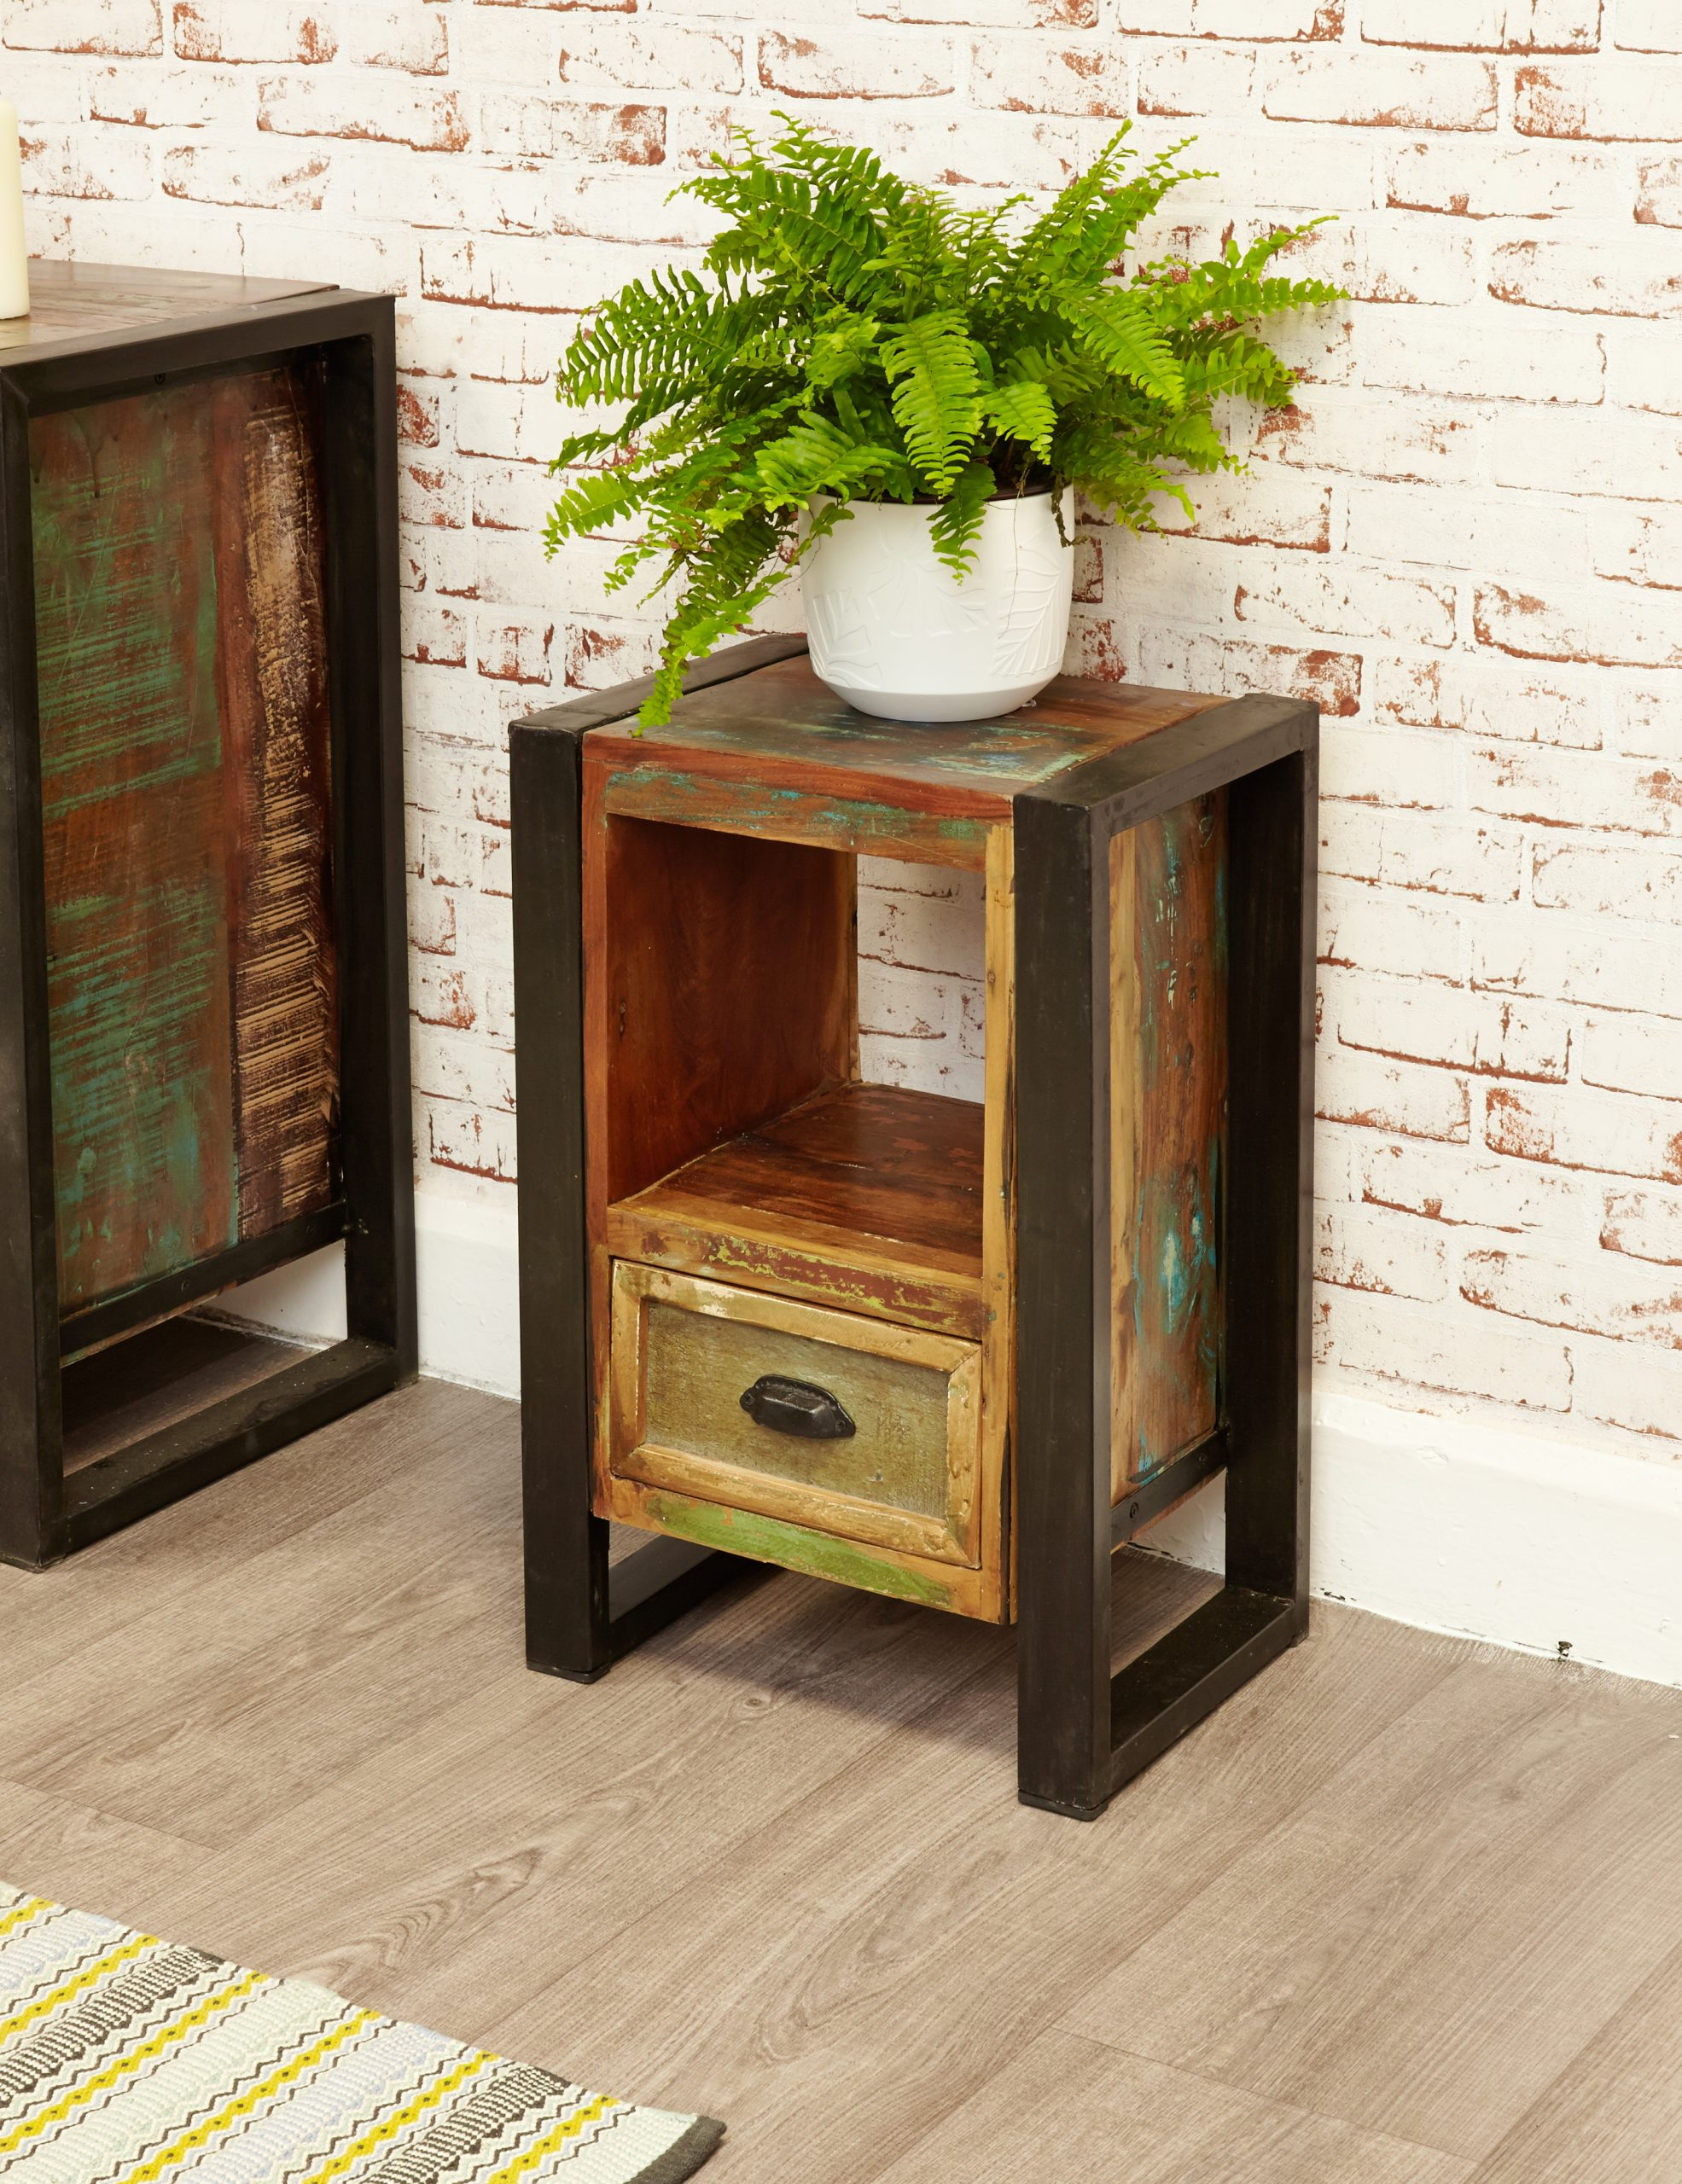 urban chic lamp table / bedside table with drawer